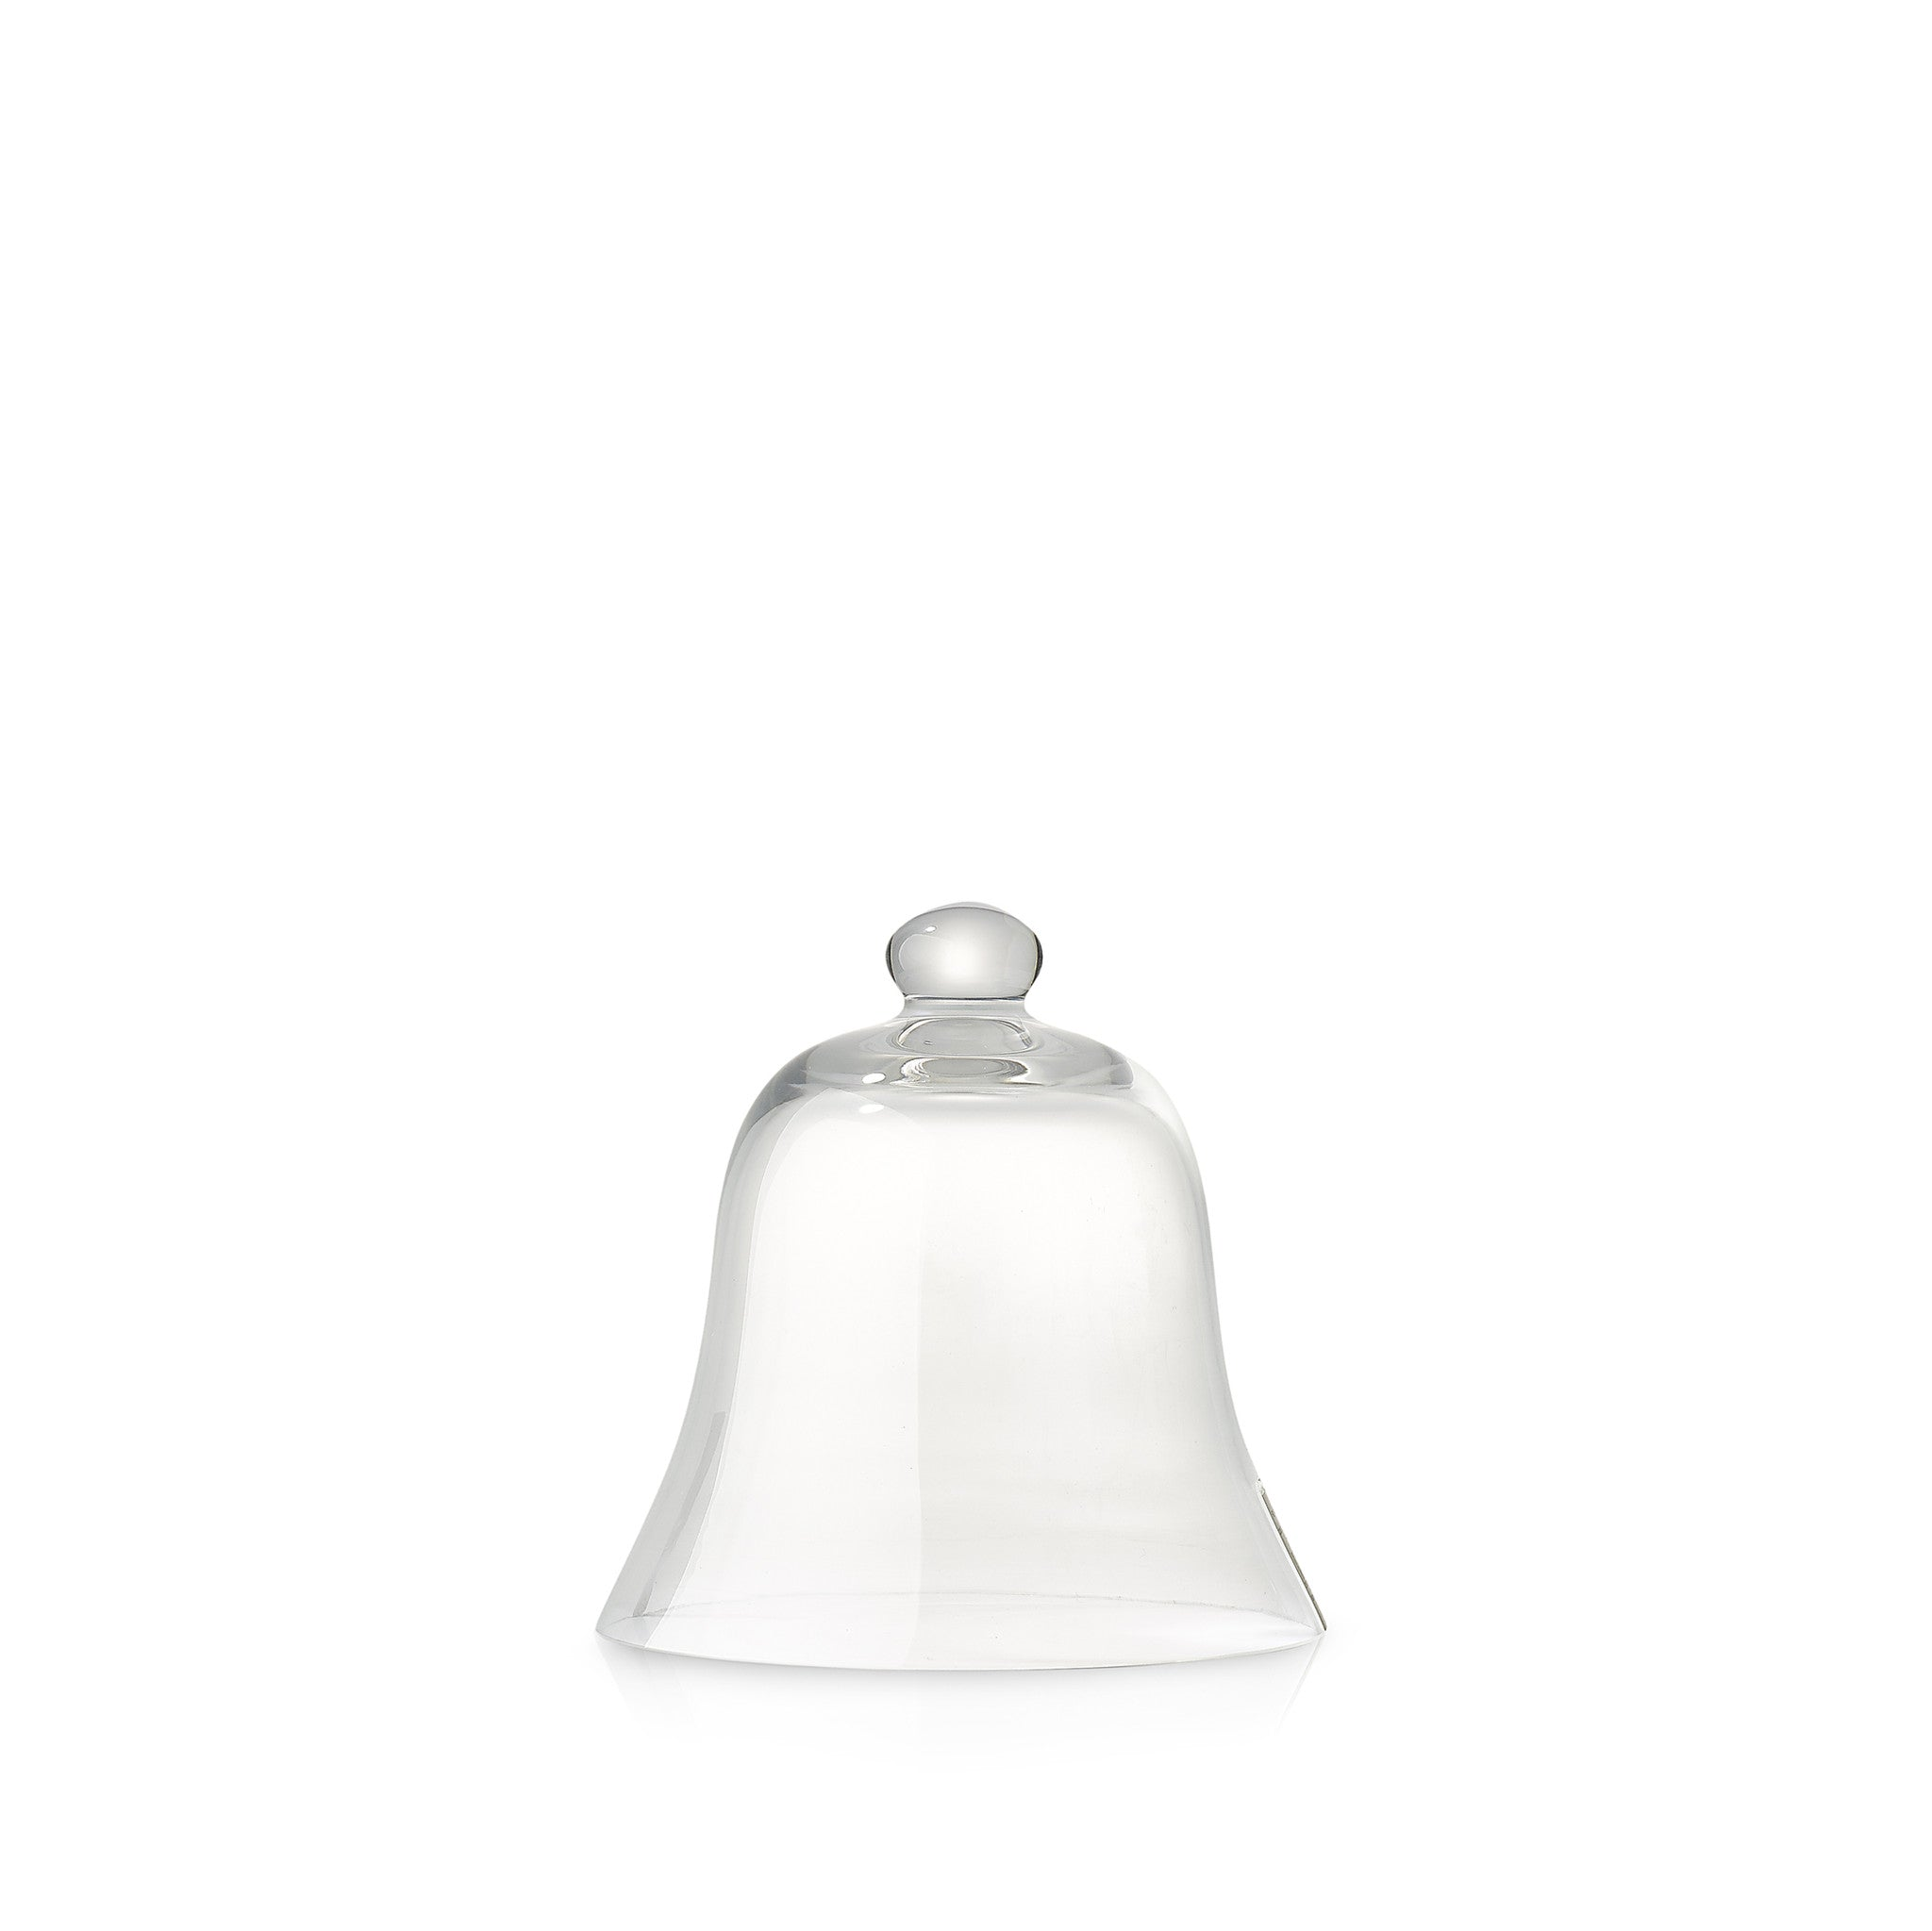 Bell Shaped Glass Cloche, 21cm